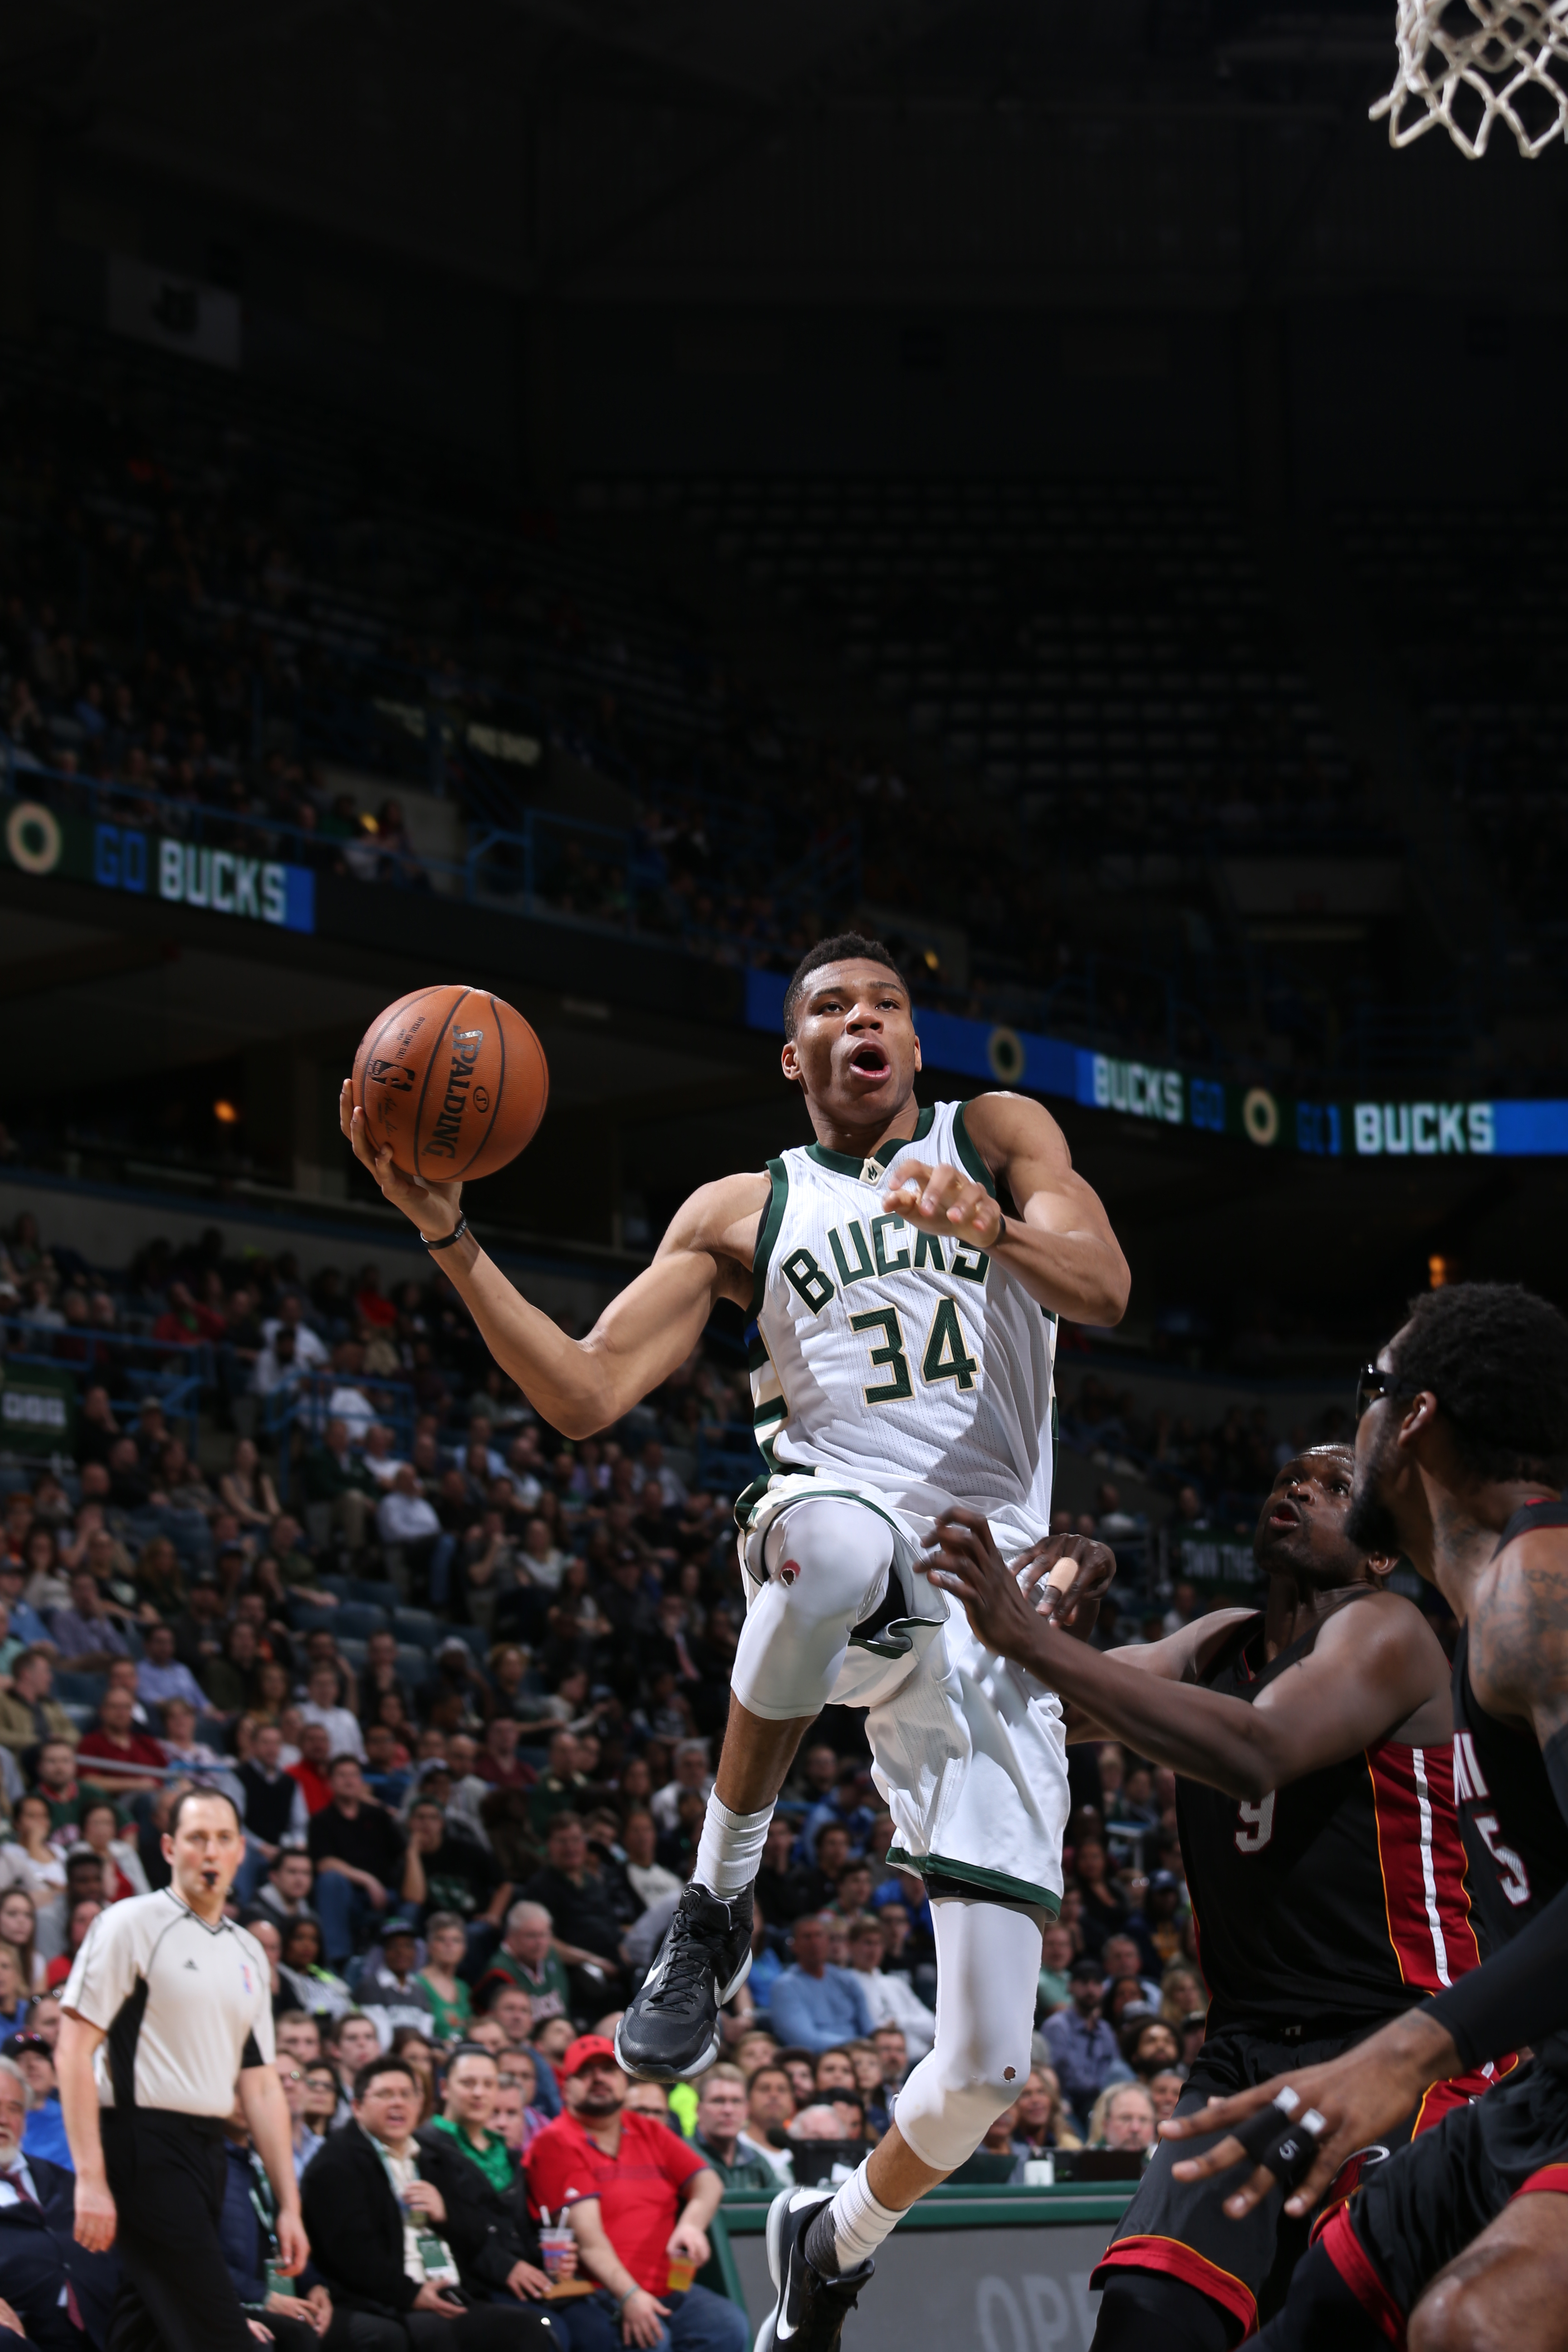 MILWAUKEE, WI  - MARCH 9: Giannis Antetokounmpo #34 of the Milwaukee Bucks goes for the lay up against the Miami Heat during the game on March 9, 2016 at BMO Harris Bradley Center in Milwaukee, Wisconsin. (Photo by Gary Dineen/NBAE via Getty Images)